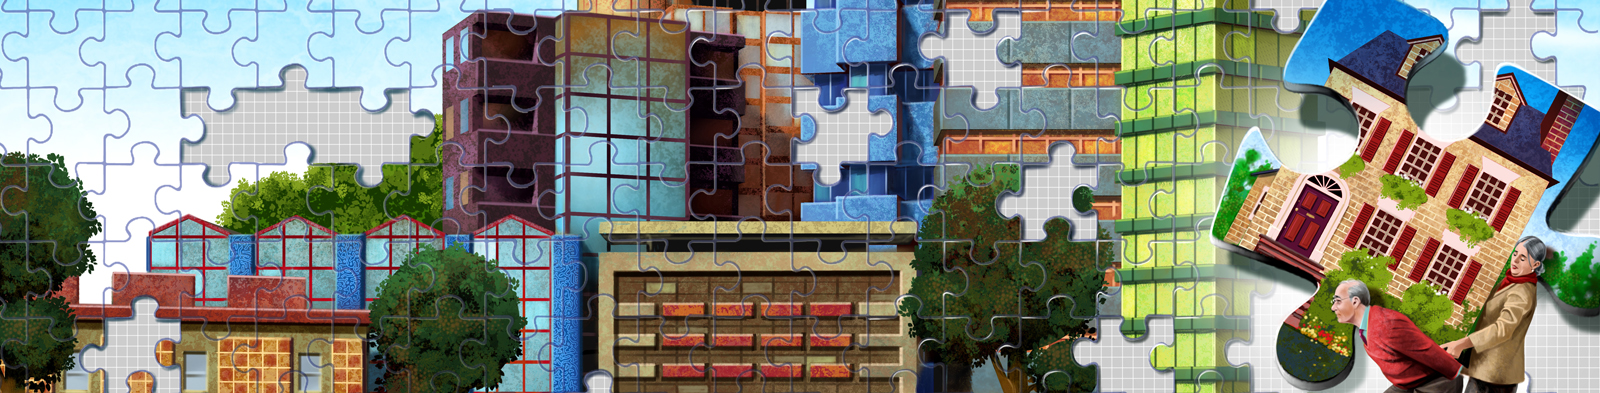 Jigsaw puzzle with cartoon elderly couple carrying one of the pieces